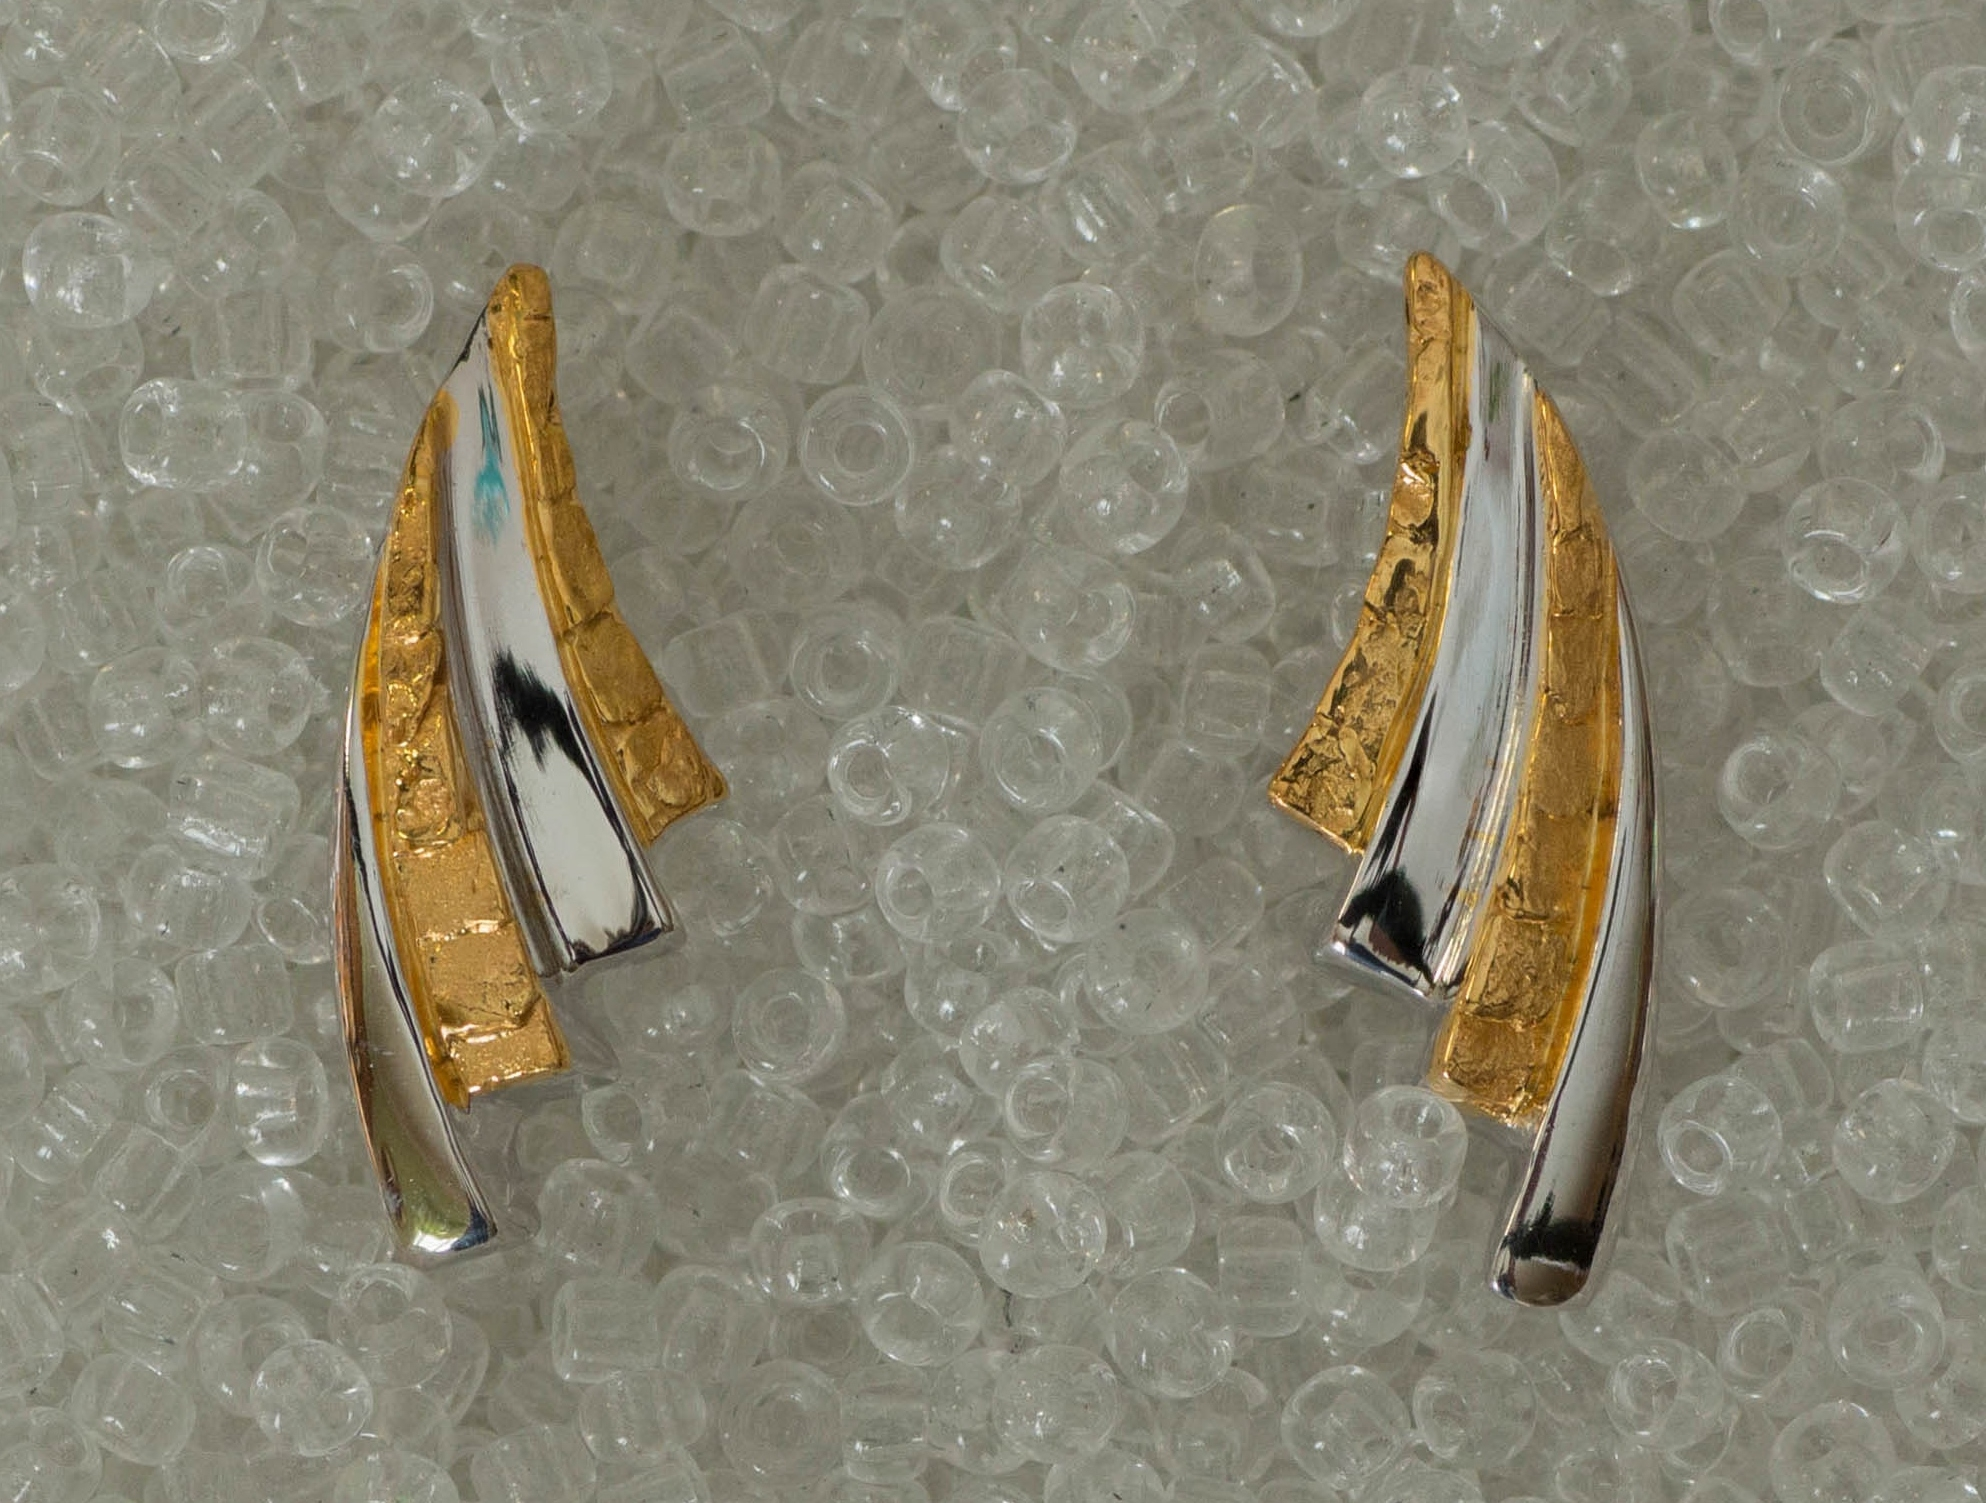 Gorgeous Alaskan Gold Nuggets arranged in swirling fan earrings of vibrant 14kt White Gold.